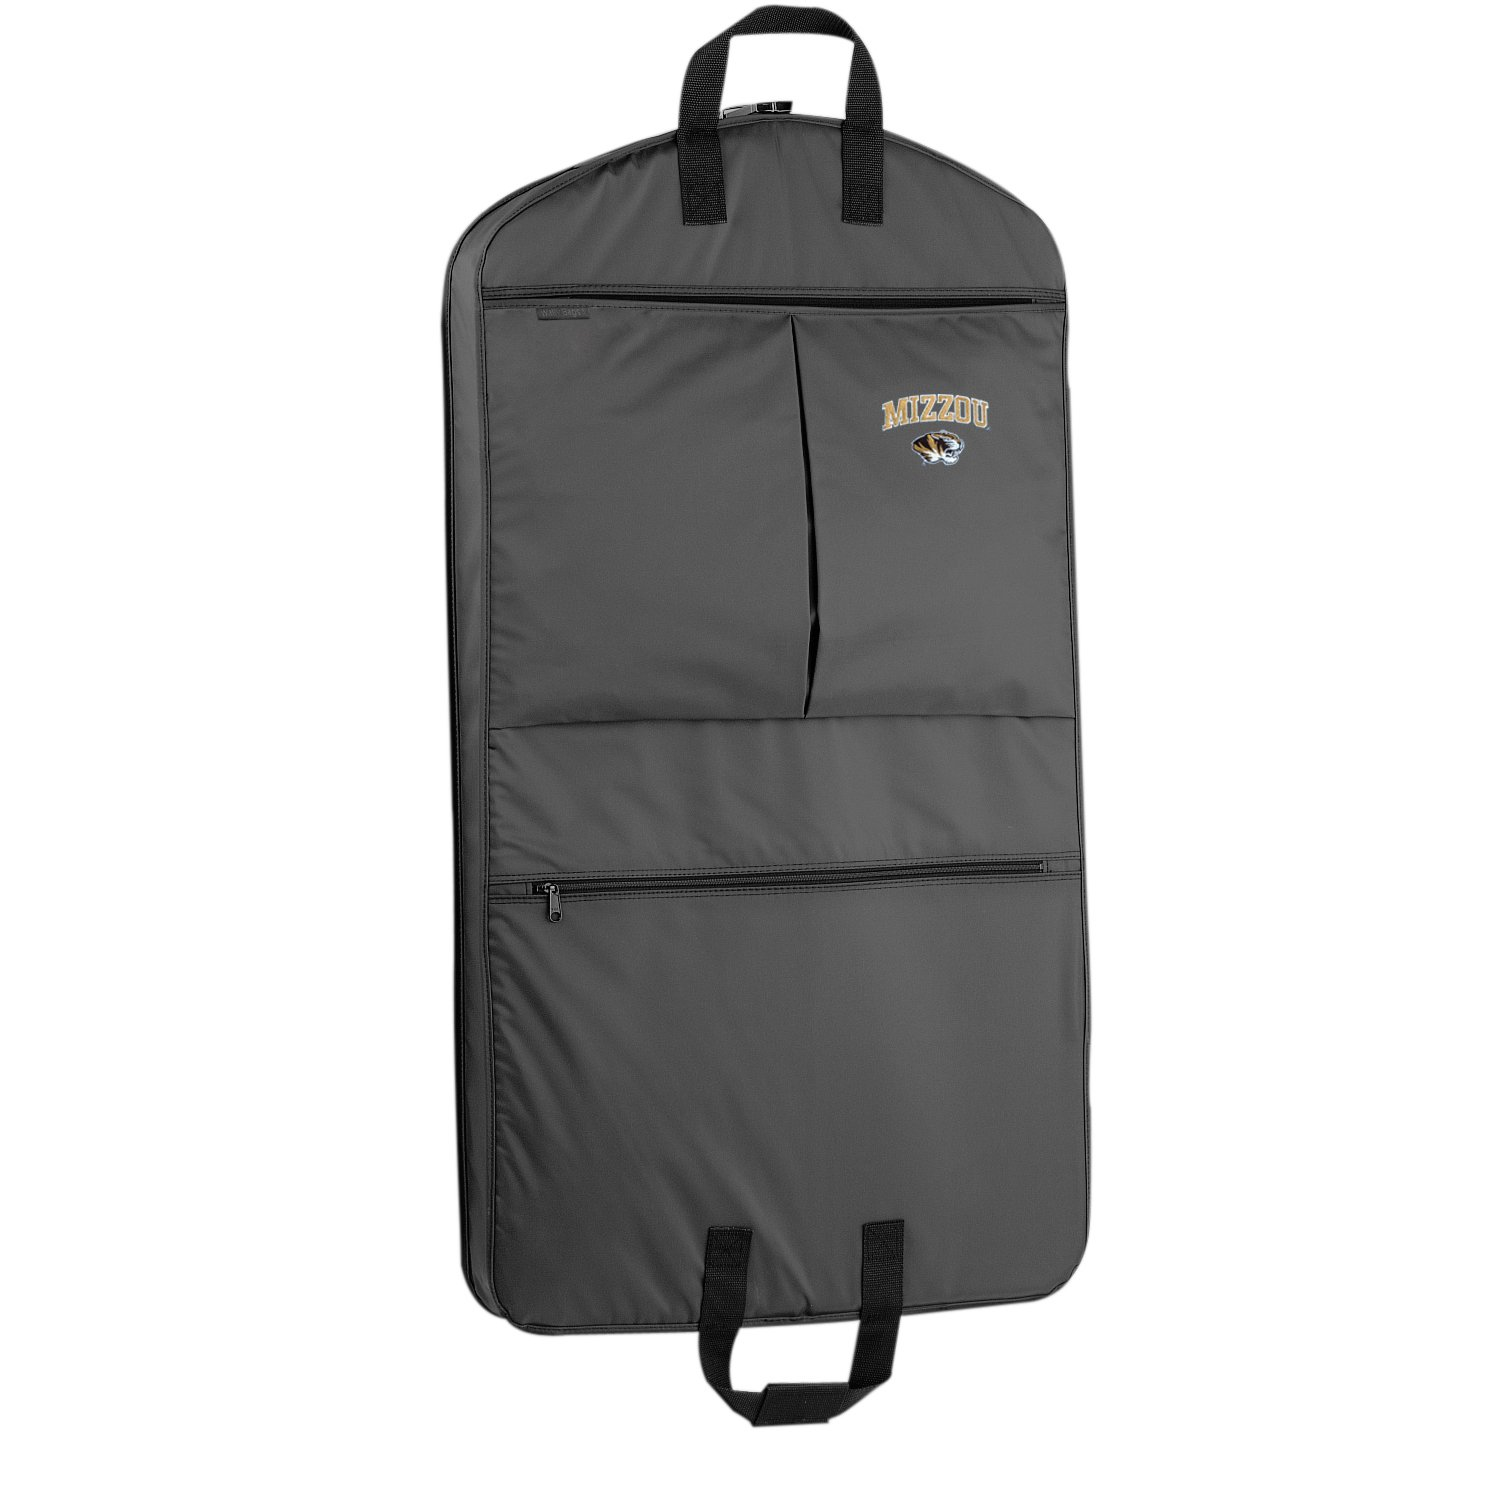 GA One Size 854 Black WallyBags Georgia Bulldogs 40 Inch Suit Length Garment Bag with Pockets